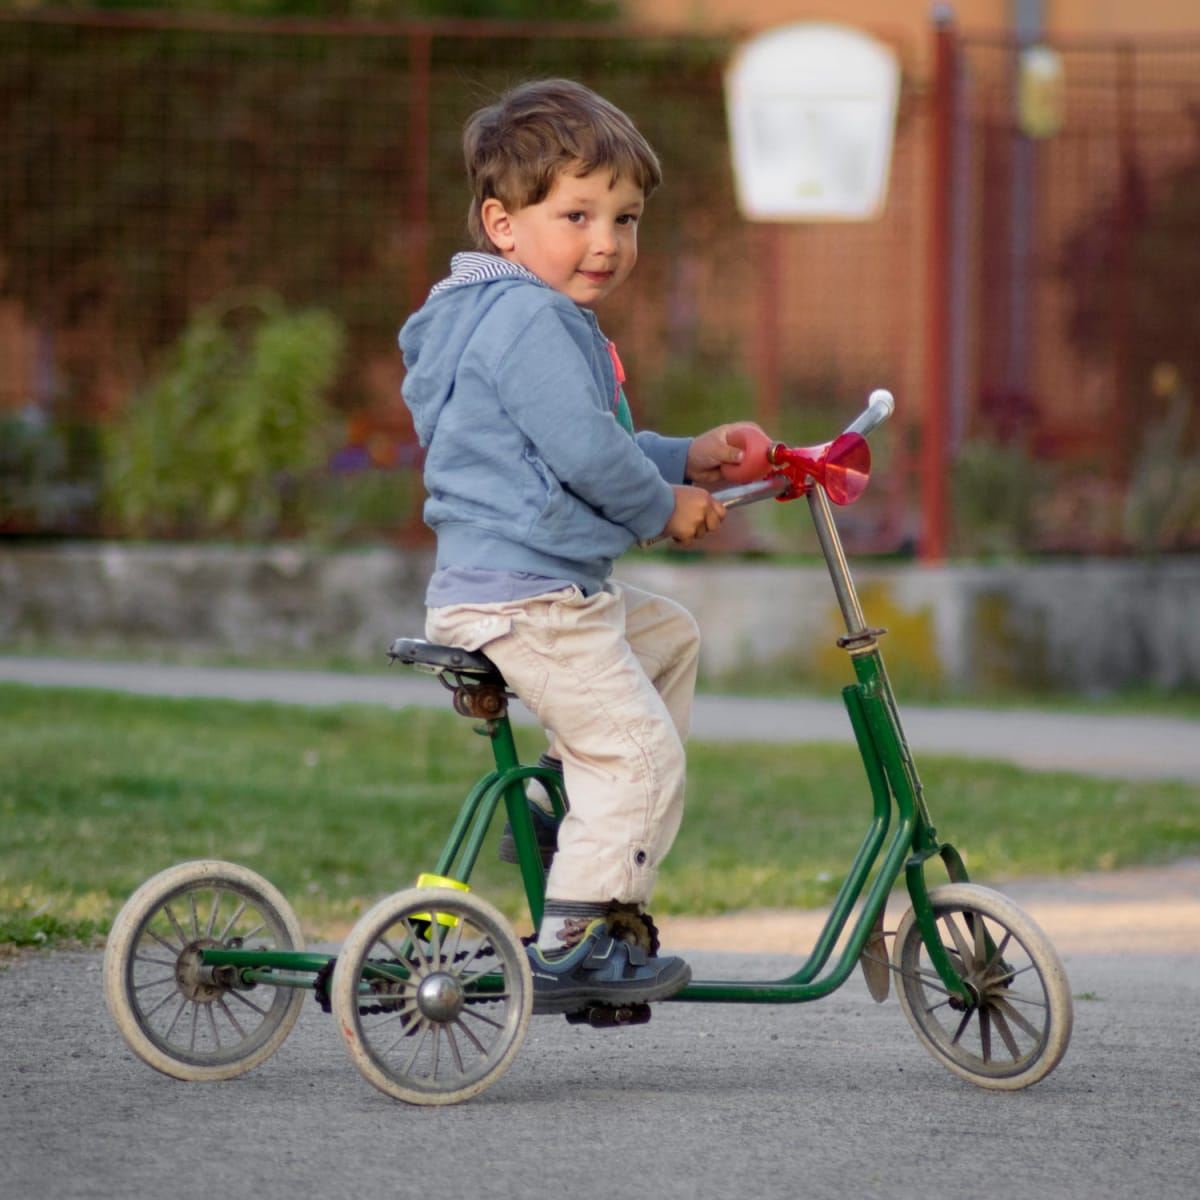 Vintage Early Tricycle or Scooter for a Toddler or Small Child.